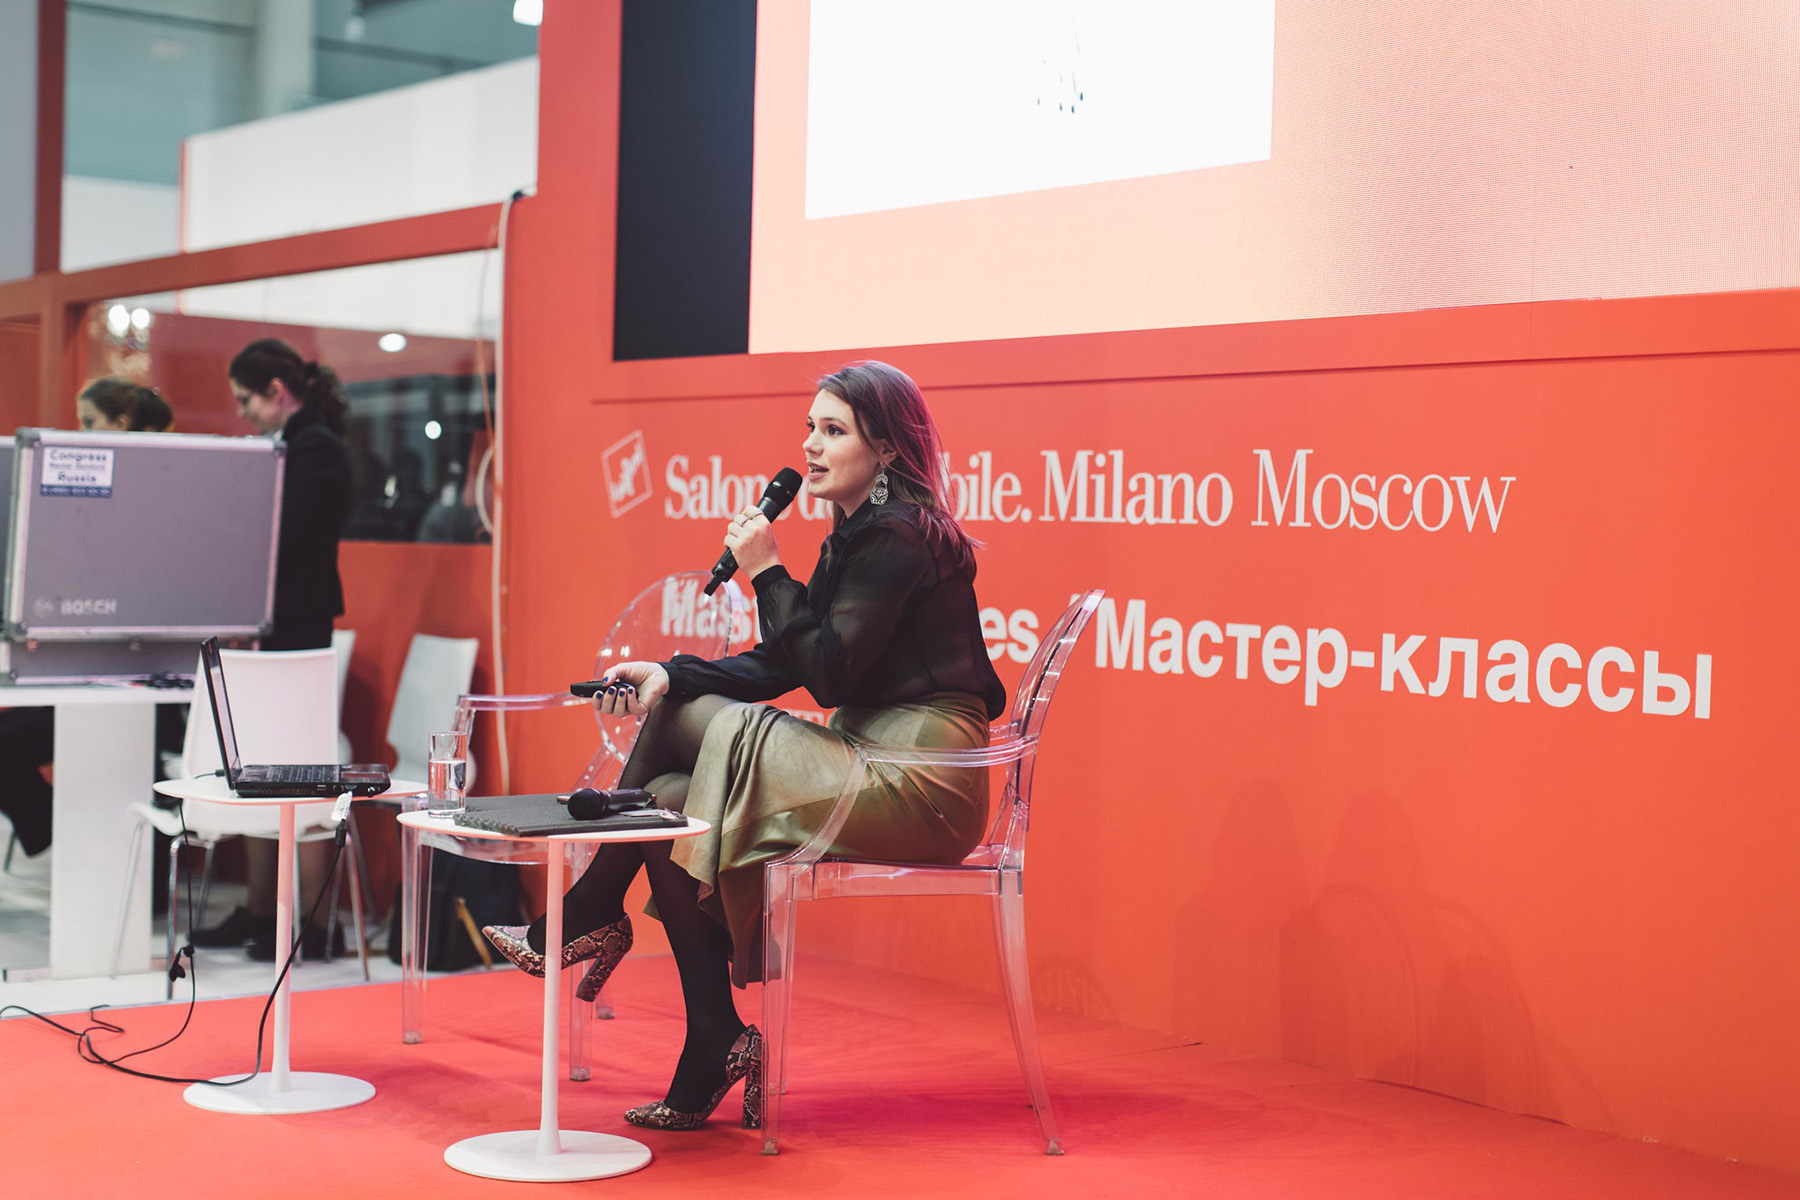 Salone del Mobile.Milano Moscow: мастер-классы и лекции 2019